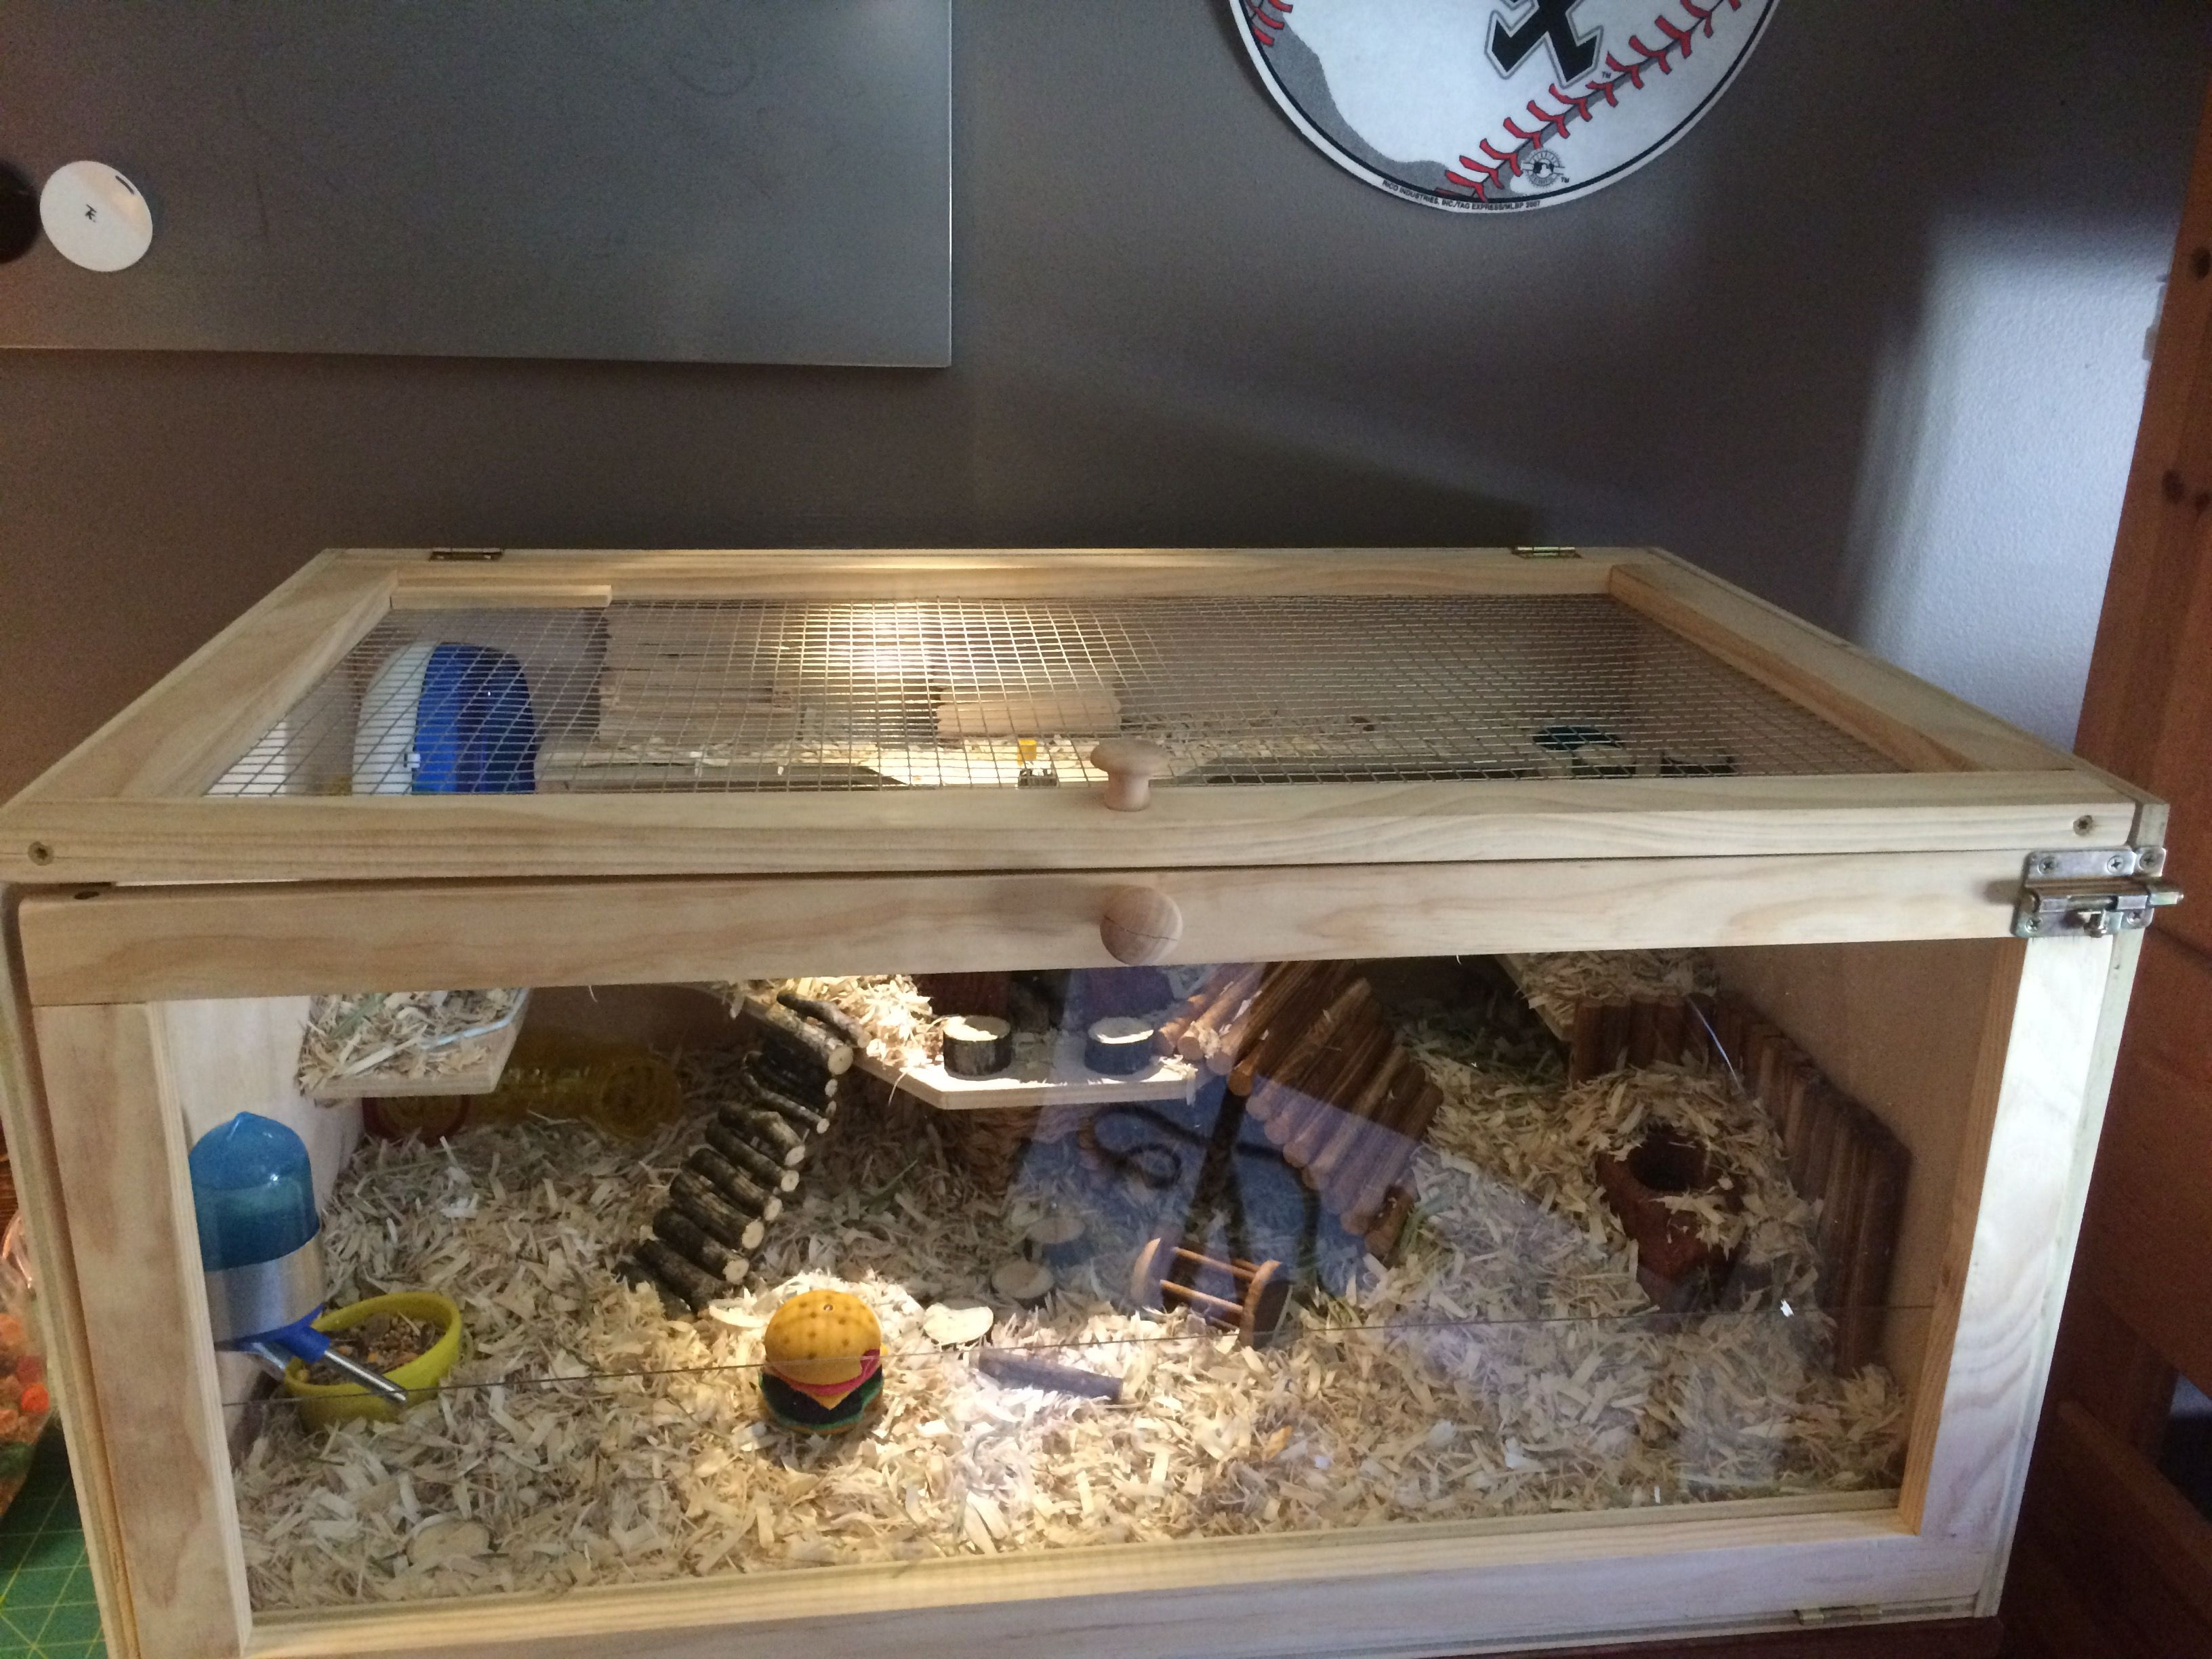 Diy Wood Hamster Cage 2 Door 2 Level Posted In Supplies Accessories My 10 Yr Old Son Just Loves His Hamste Hamster Cage Hamster Habitat Hamster Diy